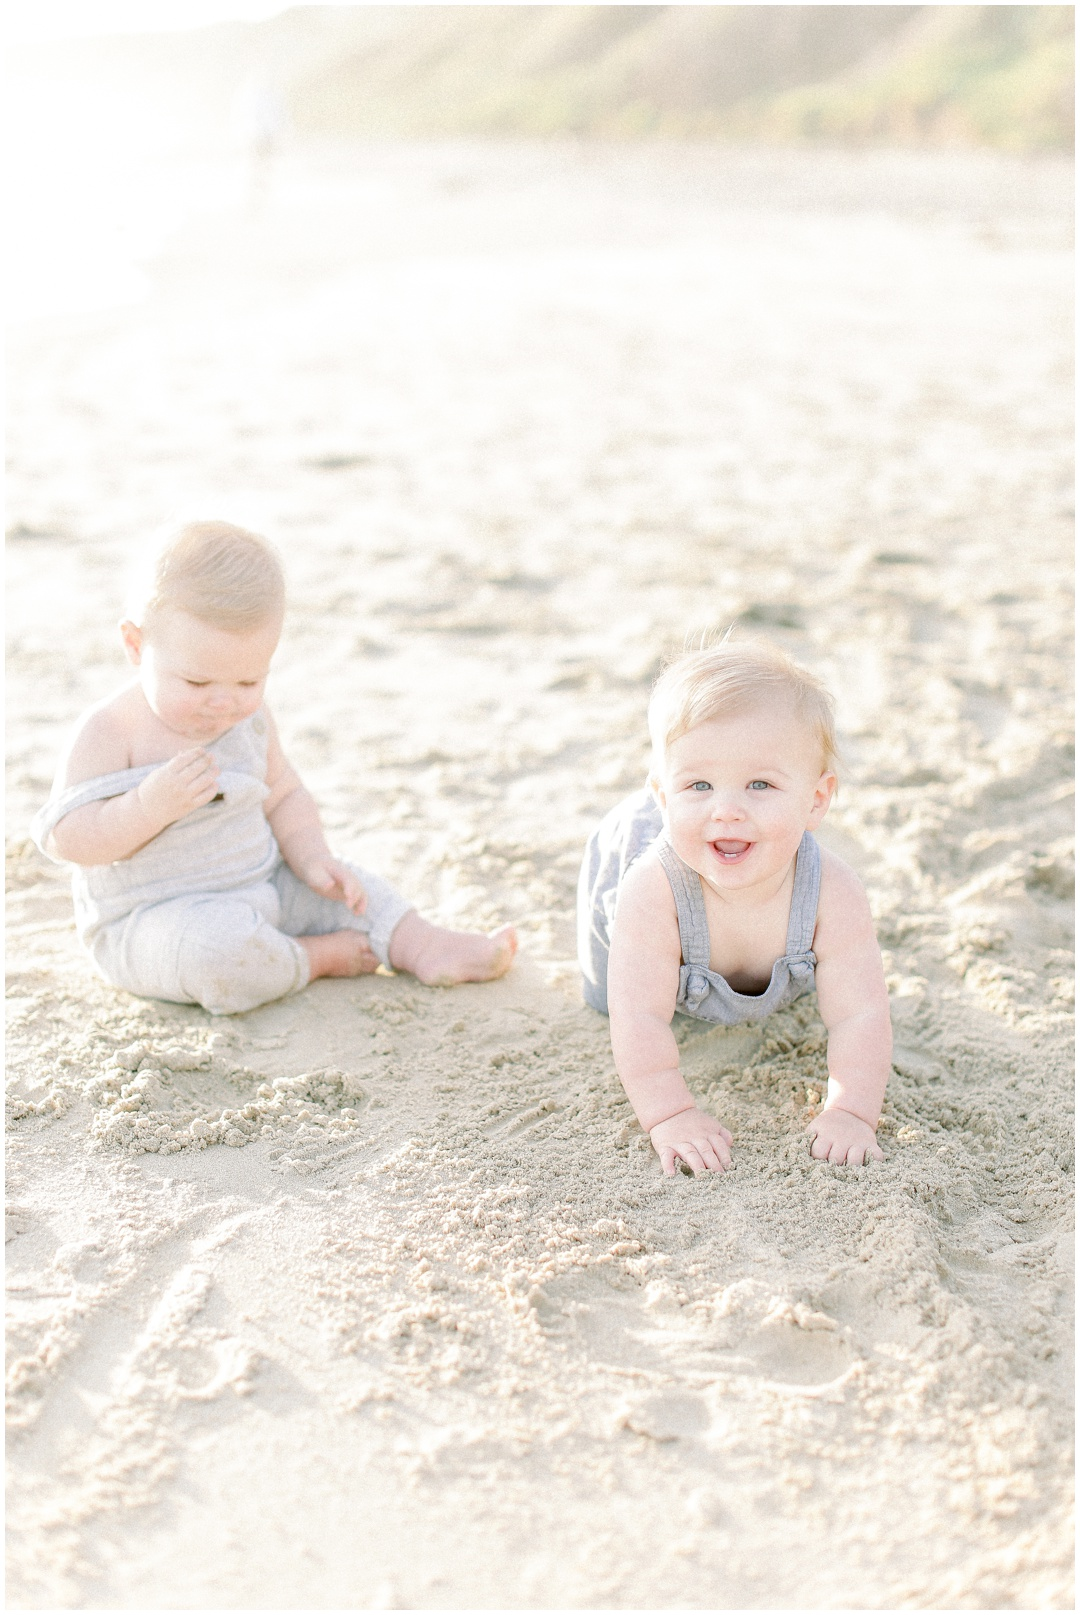 Newport_Beach_Newborn_Light_Airy_Natural_Photographer_Newport_Beach_Photographer_Orange_County_Family_Photographer_Cori_Kleckner_Photography_Huntington_Beach_Photographer_Family_OC_Newborn_Kelly_Bandak_Nik_Bandak__3505.jpg